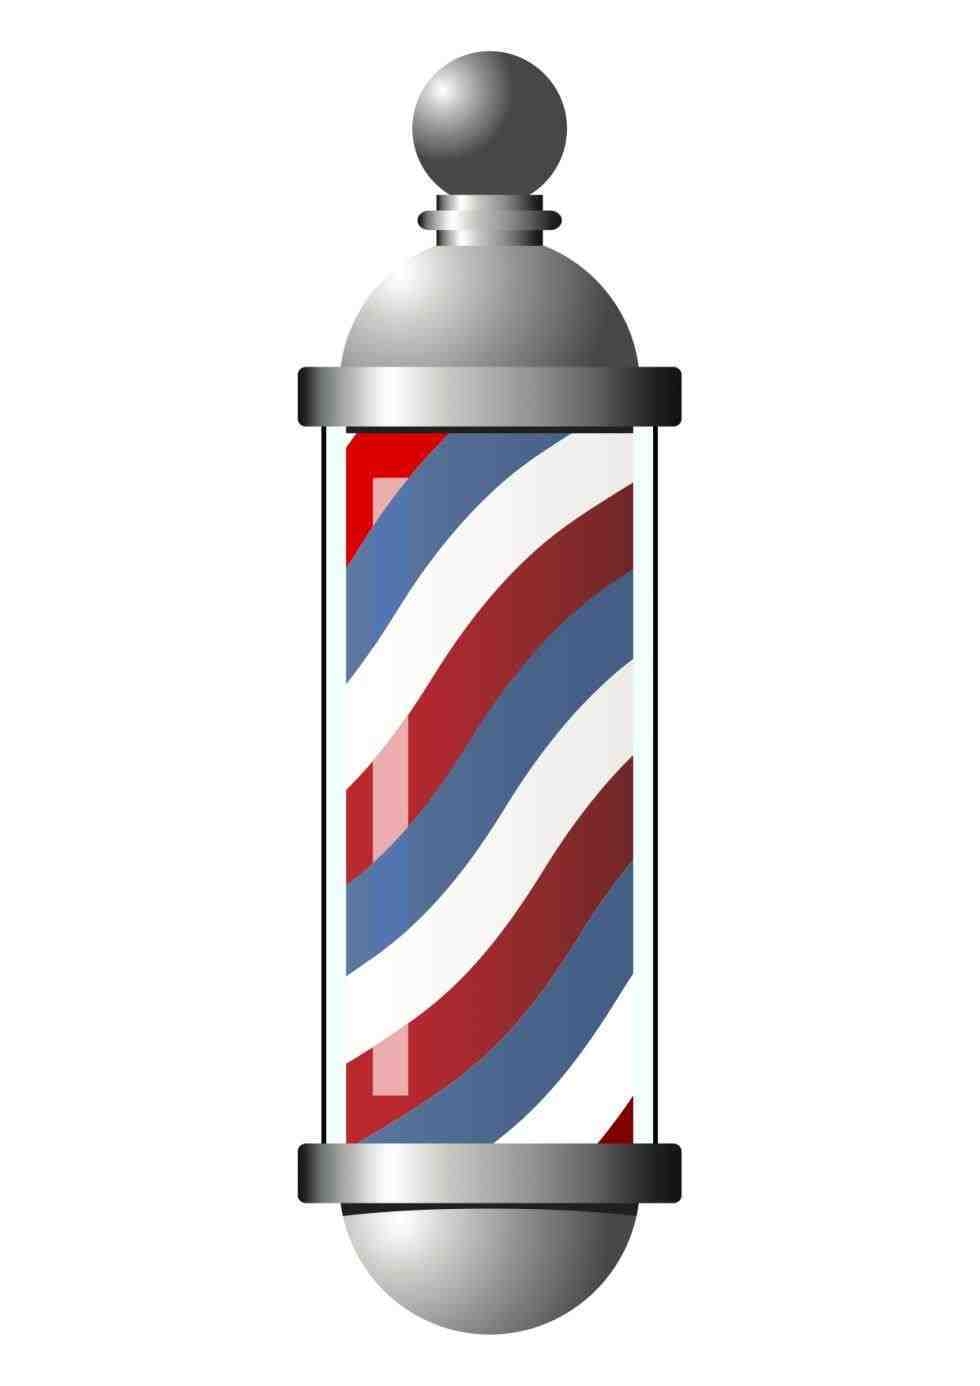 barber-Barber-Shop-Pole-Png-pole-free-download- - Barber Shop PNG